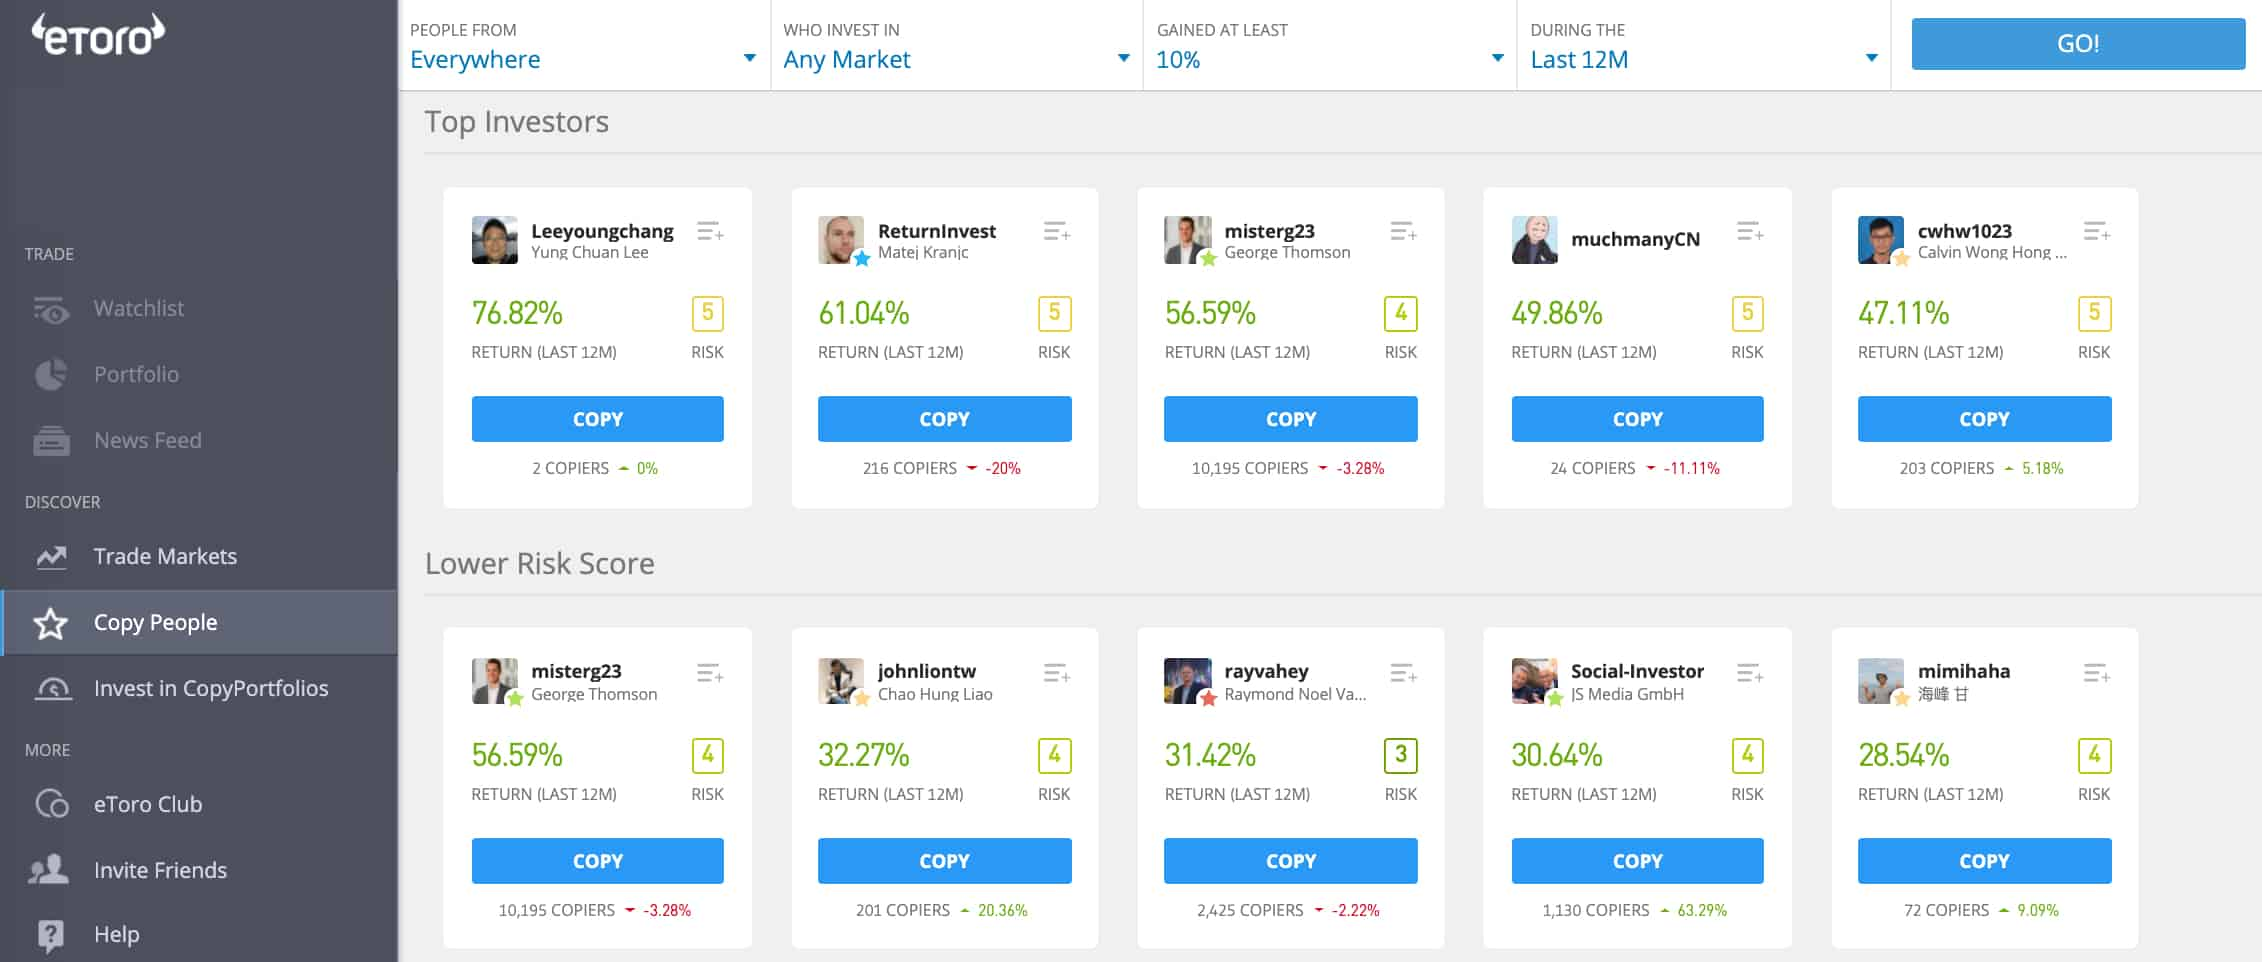 eToro Popular Investors Beginners